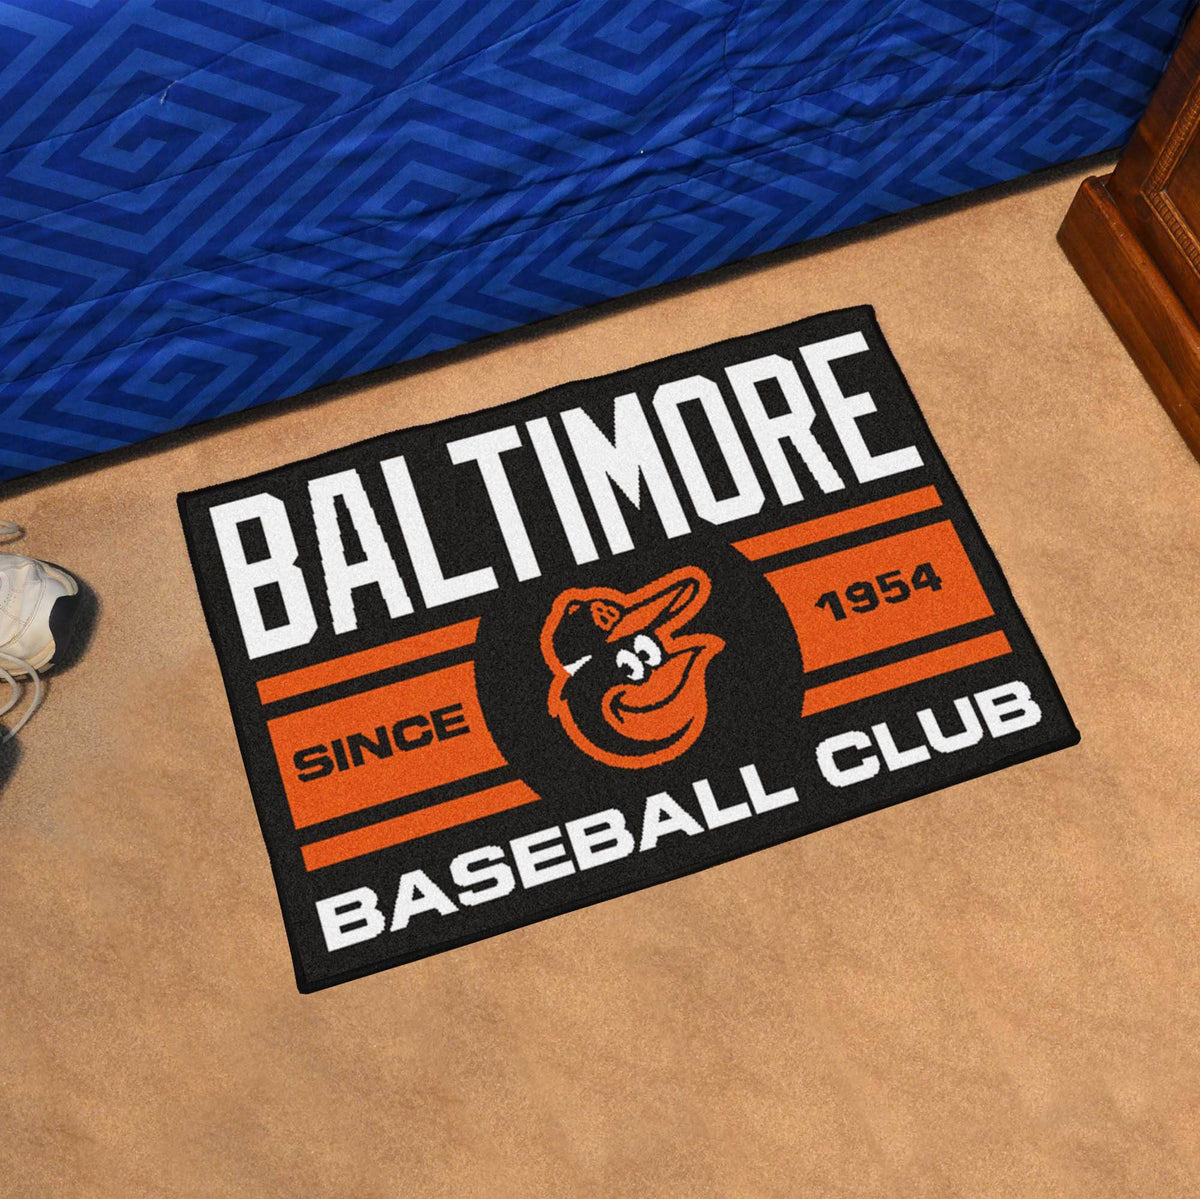 MLB - Uniform Starter Mat MLB Mats, Rectangular Mats, Uniform Starter Mat, MLB, Home Fan Mats Baltimore Orioles